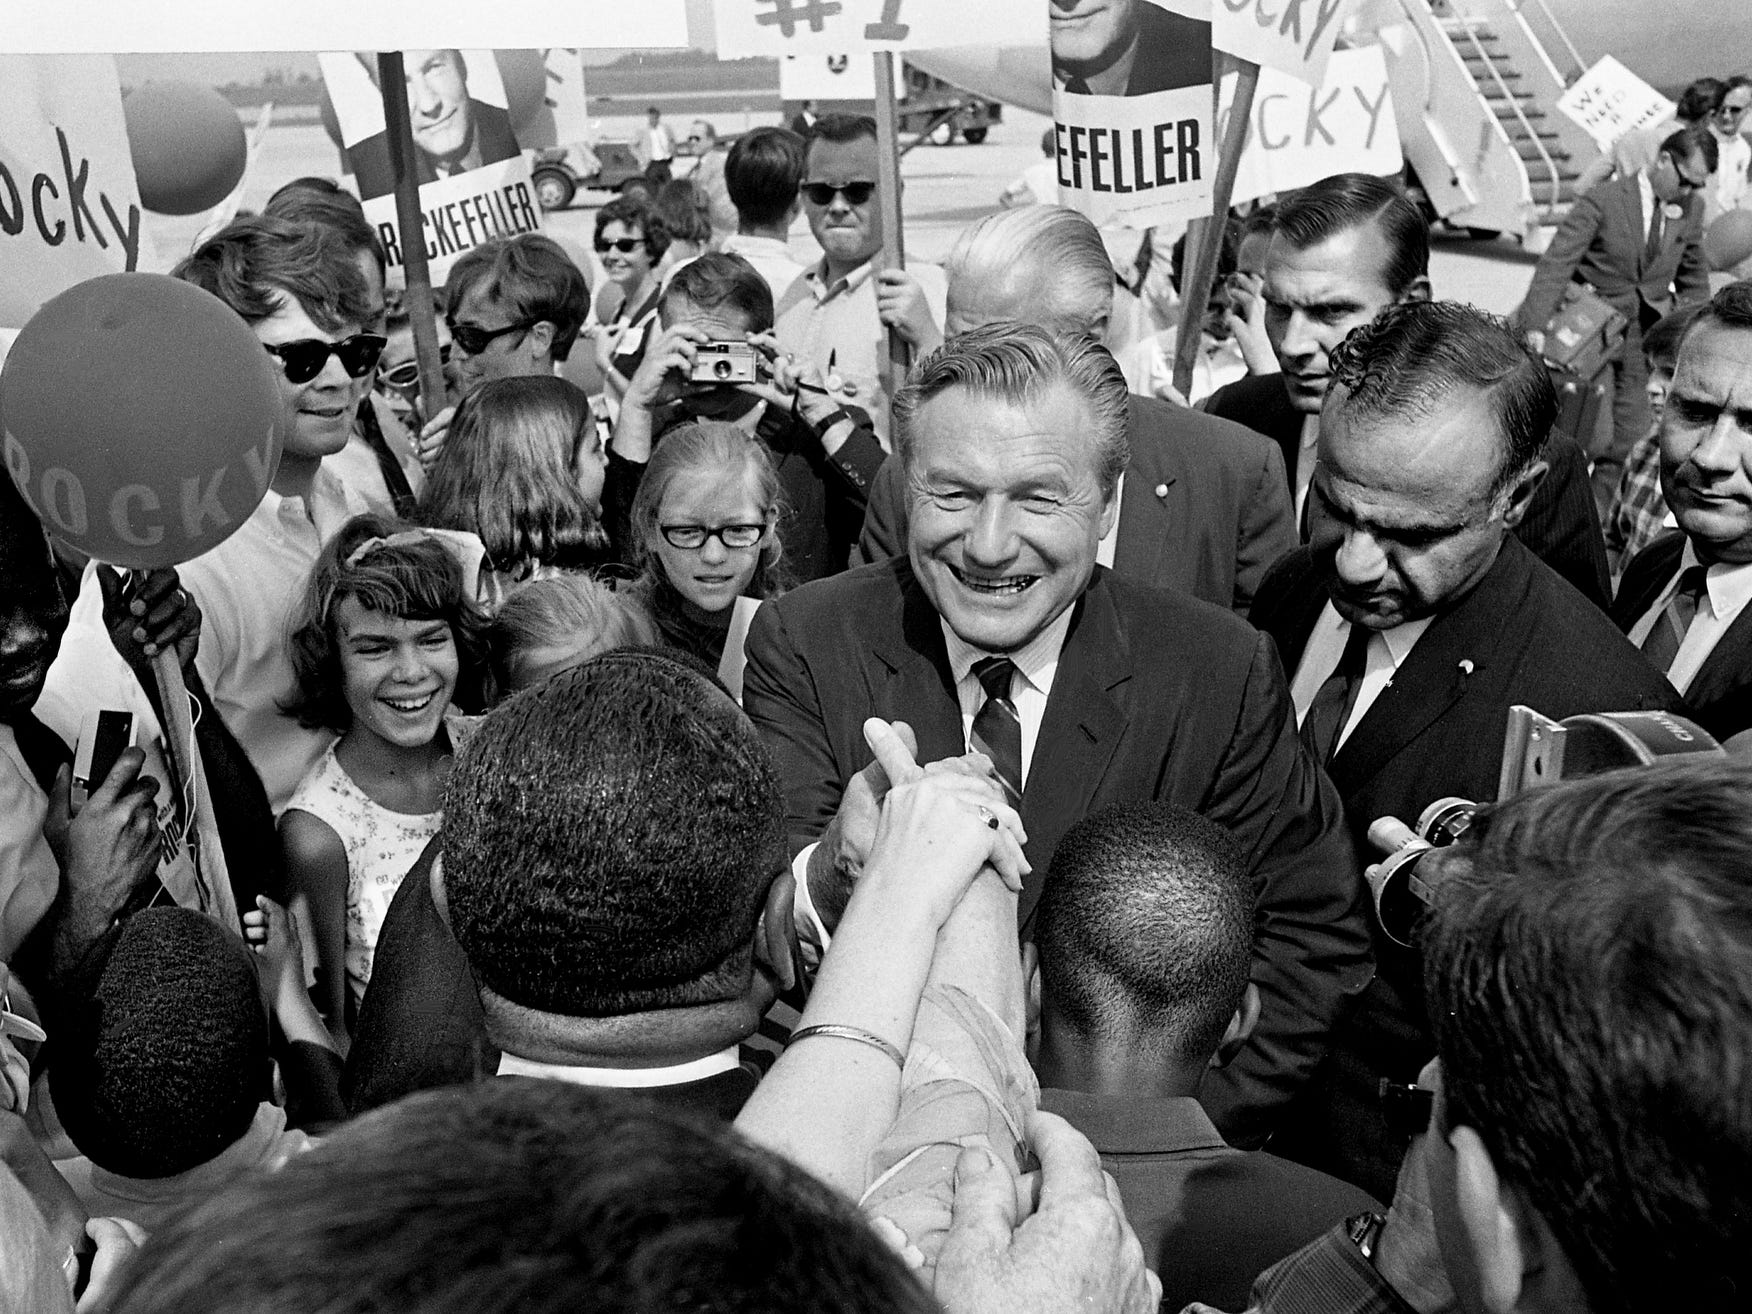 Gov. Nelson Rockefeller of New York shakes hands with enthusiastic supporters who met the Republican presidential nominee upon his arrival at Nashville Municipal Airport on July 9, 1968.